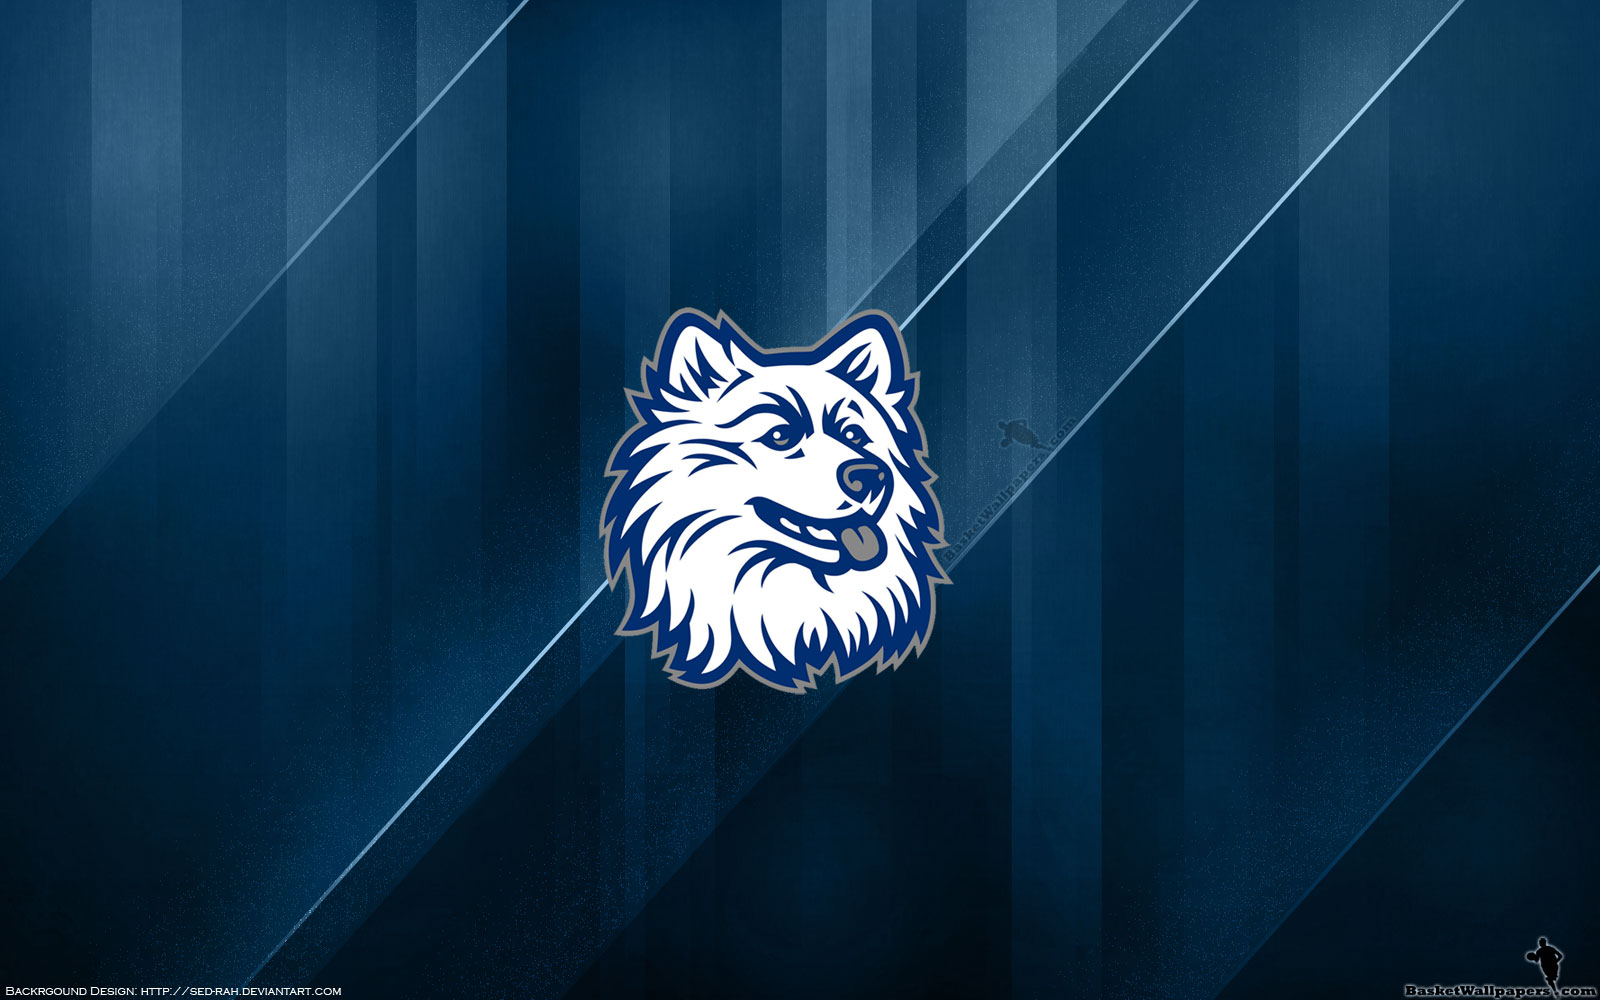 uconn iphone 5 wallpaper